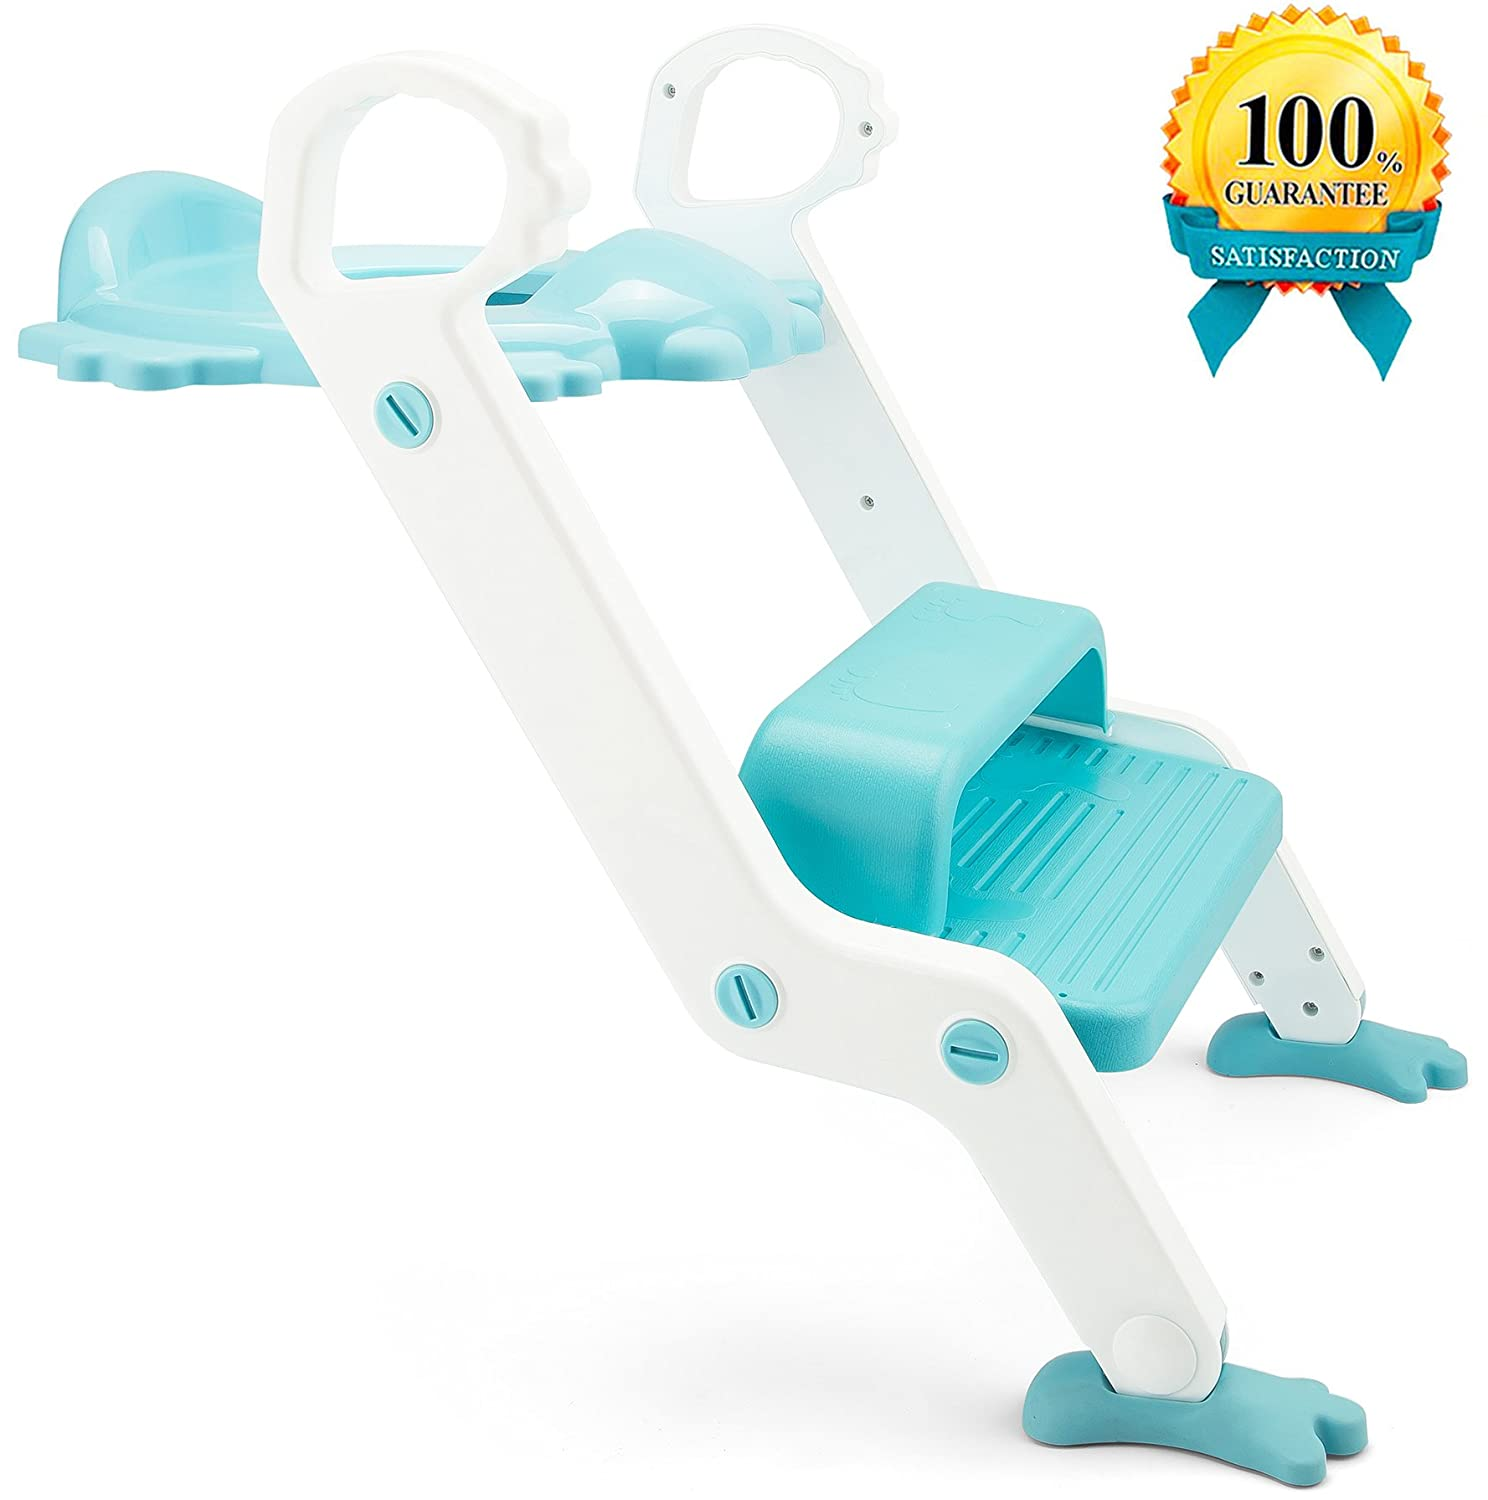 Potty Training Seat, with Step Stool Ladder for Kids and Baby, Non-Slip Kids Toilet Training Seat, Toddlers Potty Ring for Round and Oval Toilets Potty Trainer